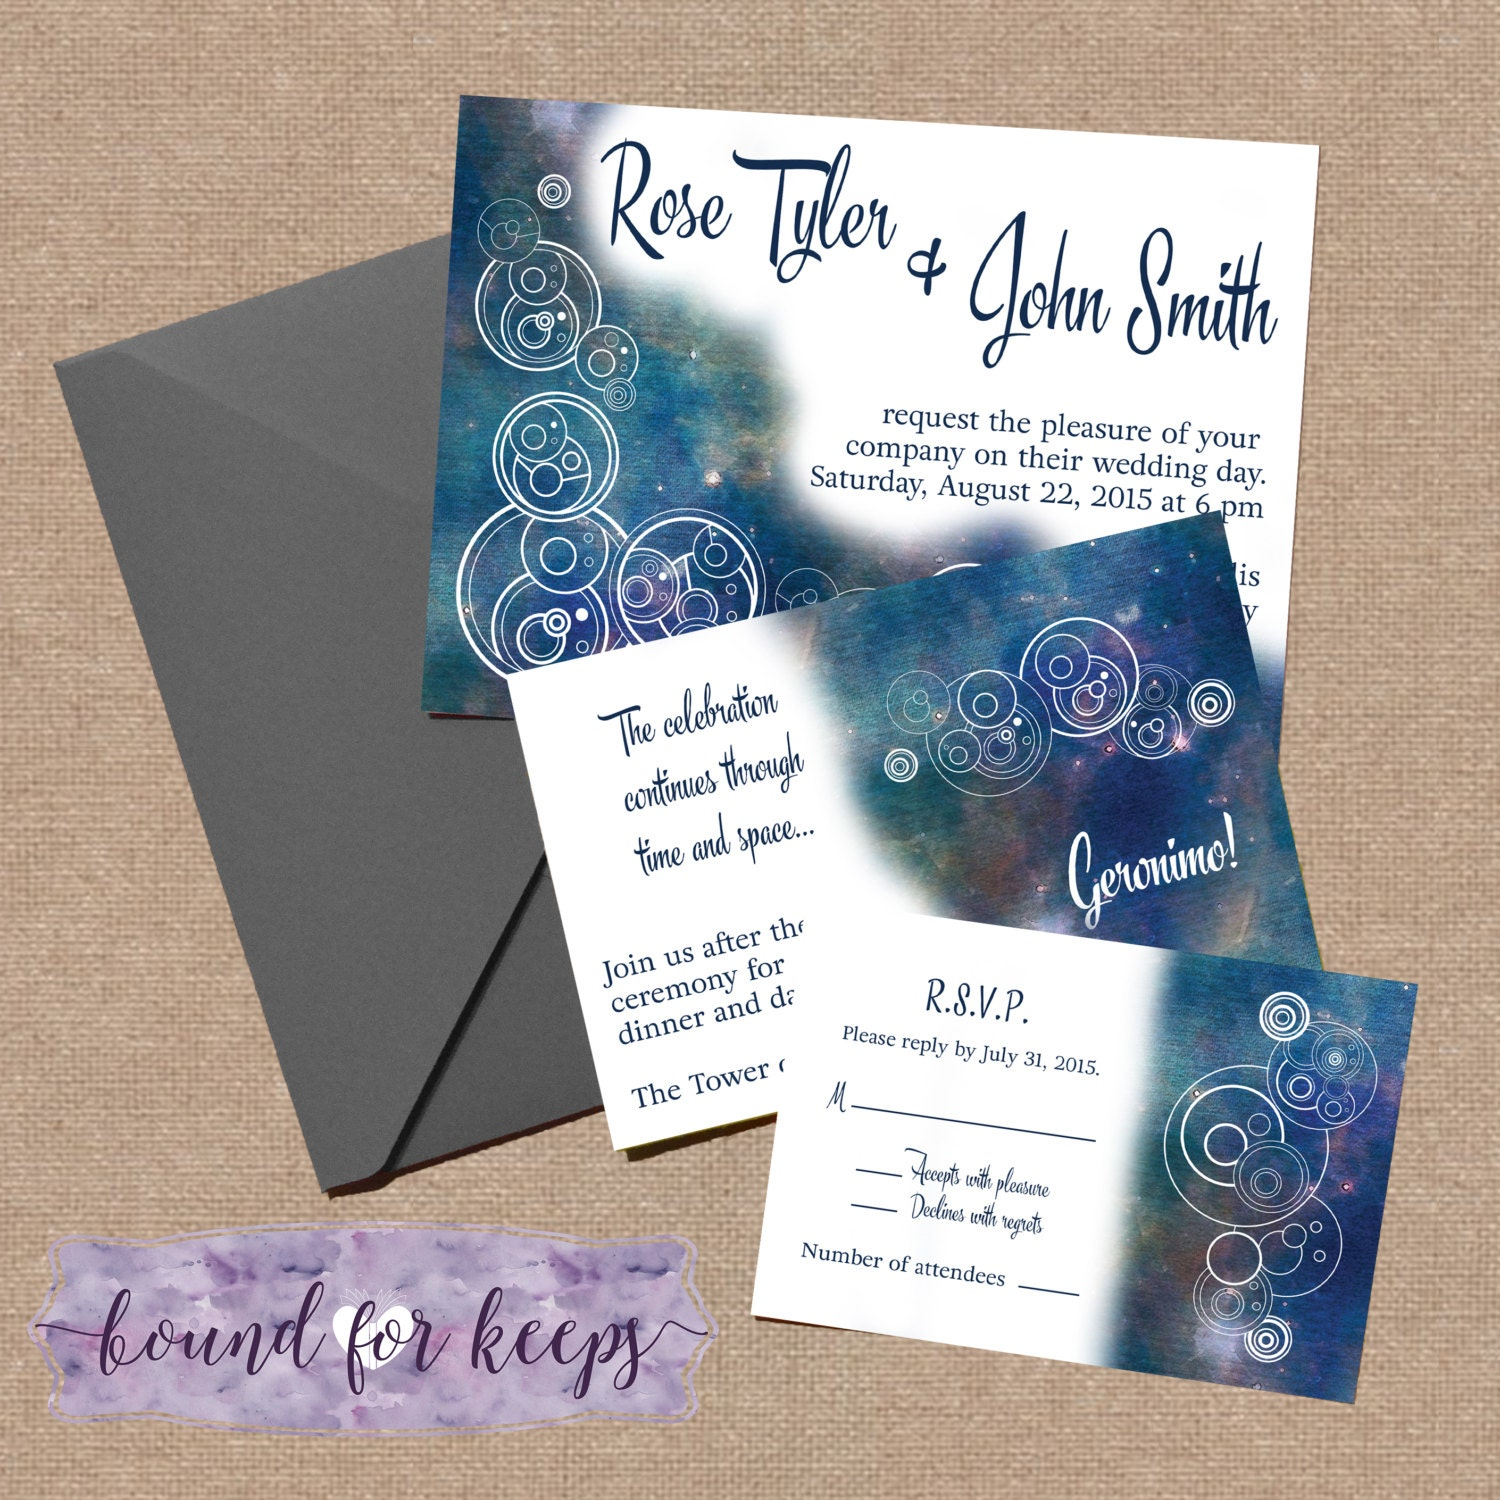 Emejing Dr Who Wedding Invitations Contemporary - Styles & Ideas ...